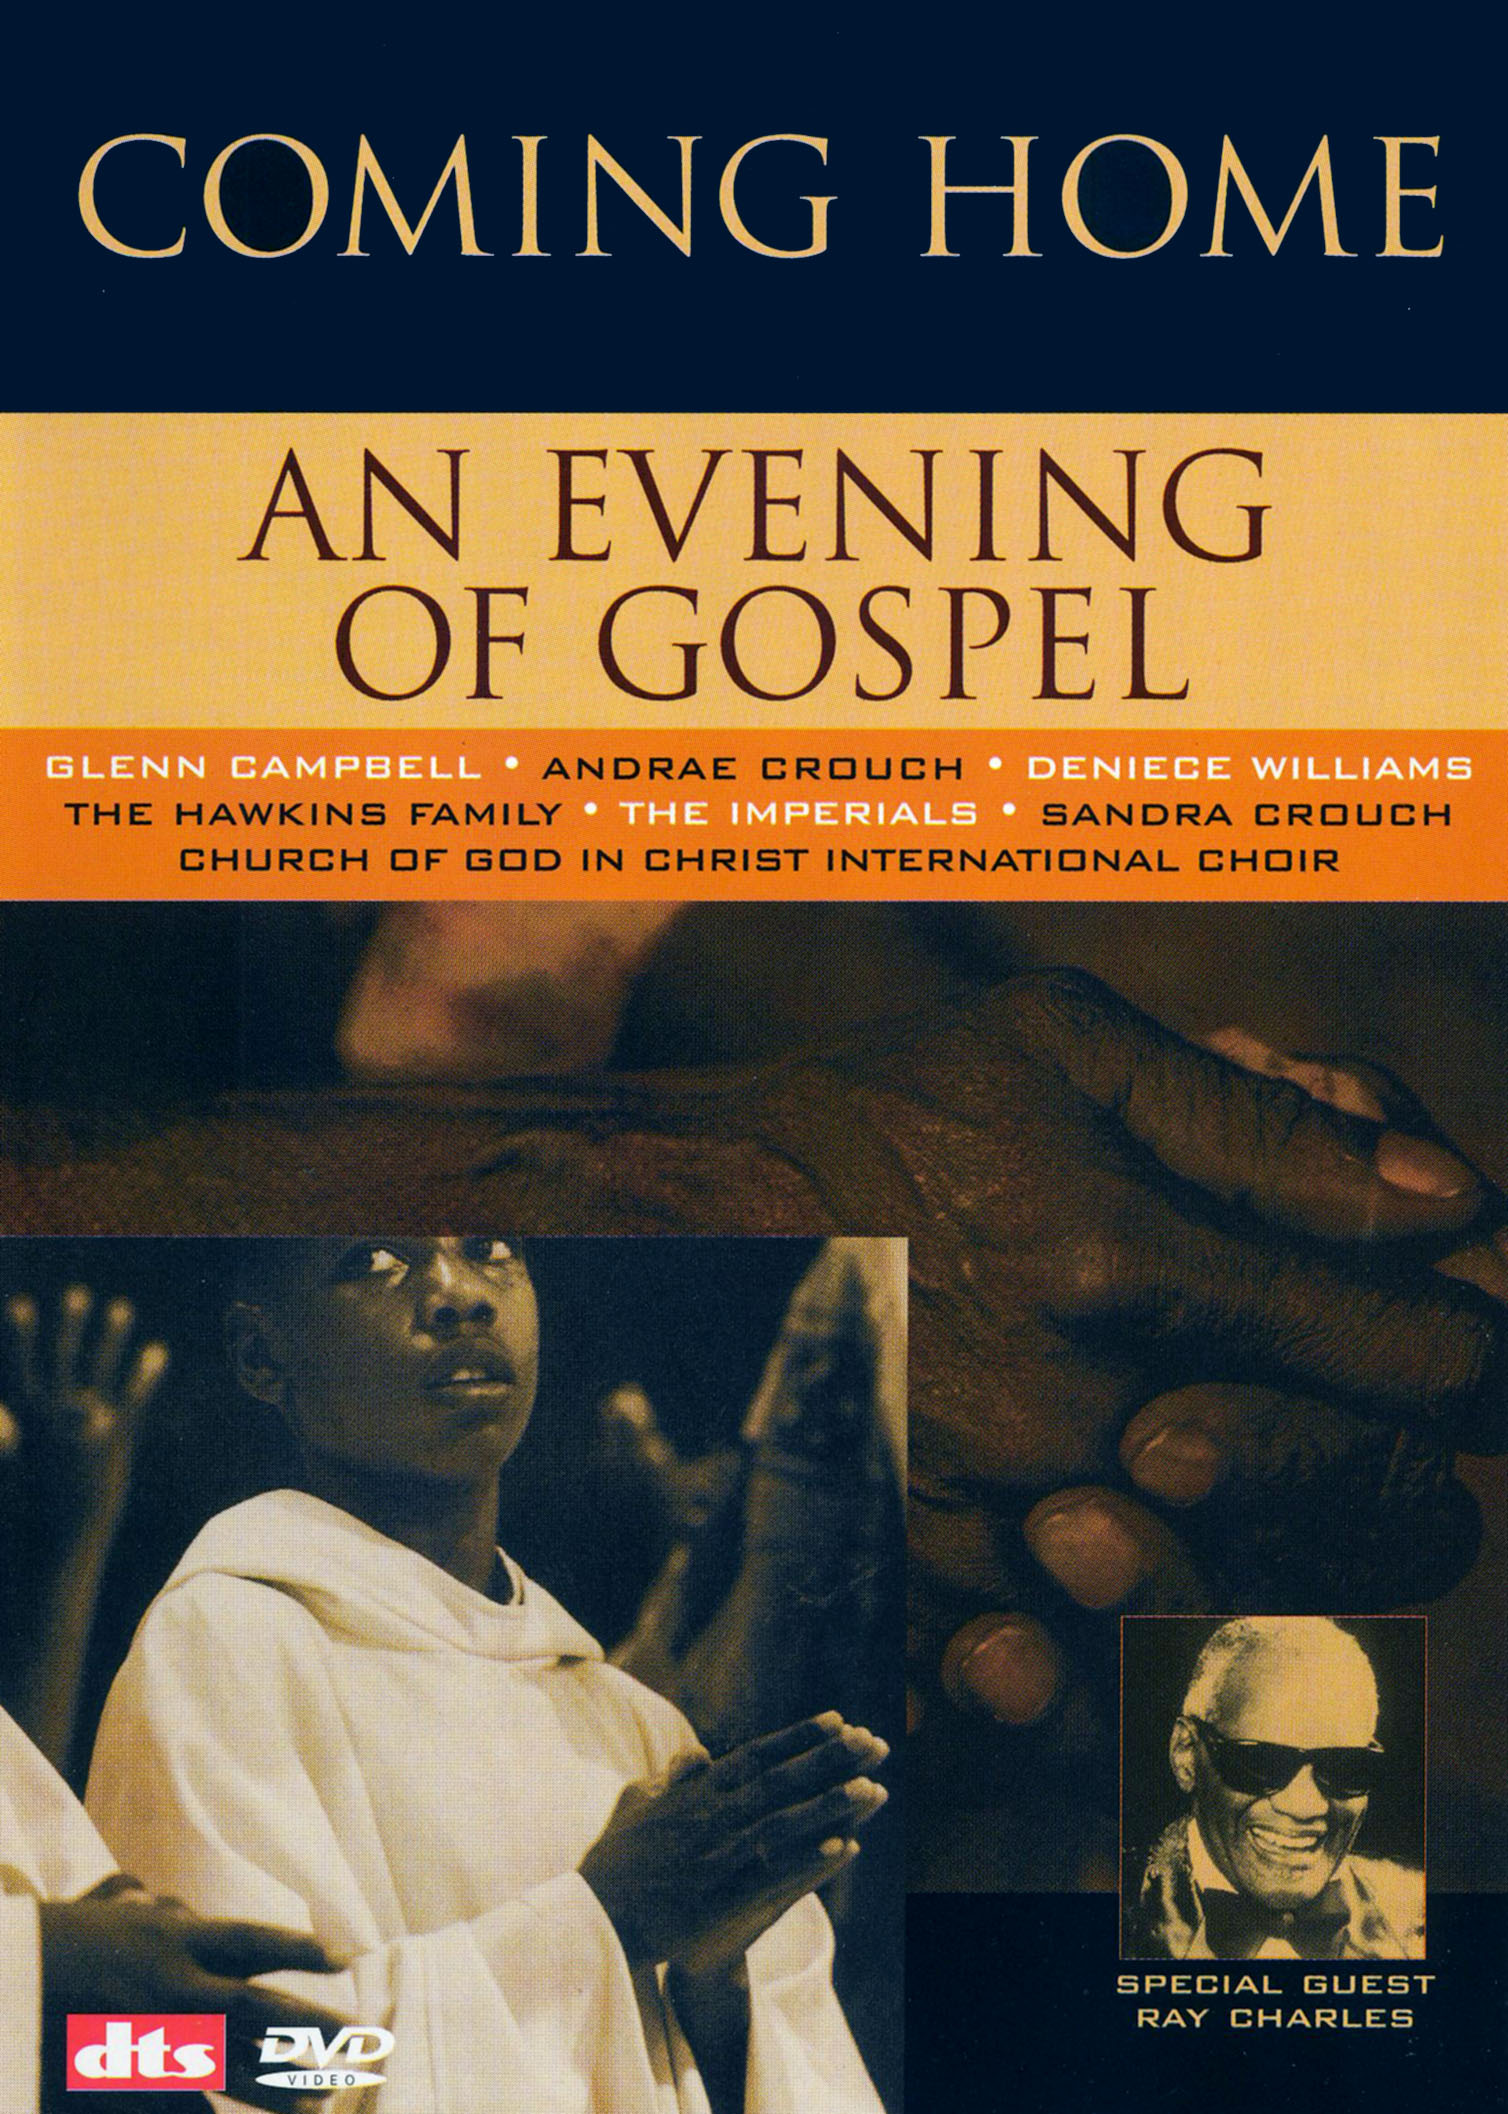 Coming Home: An Evening of Gospel